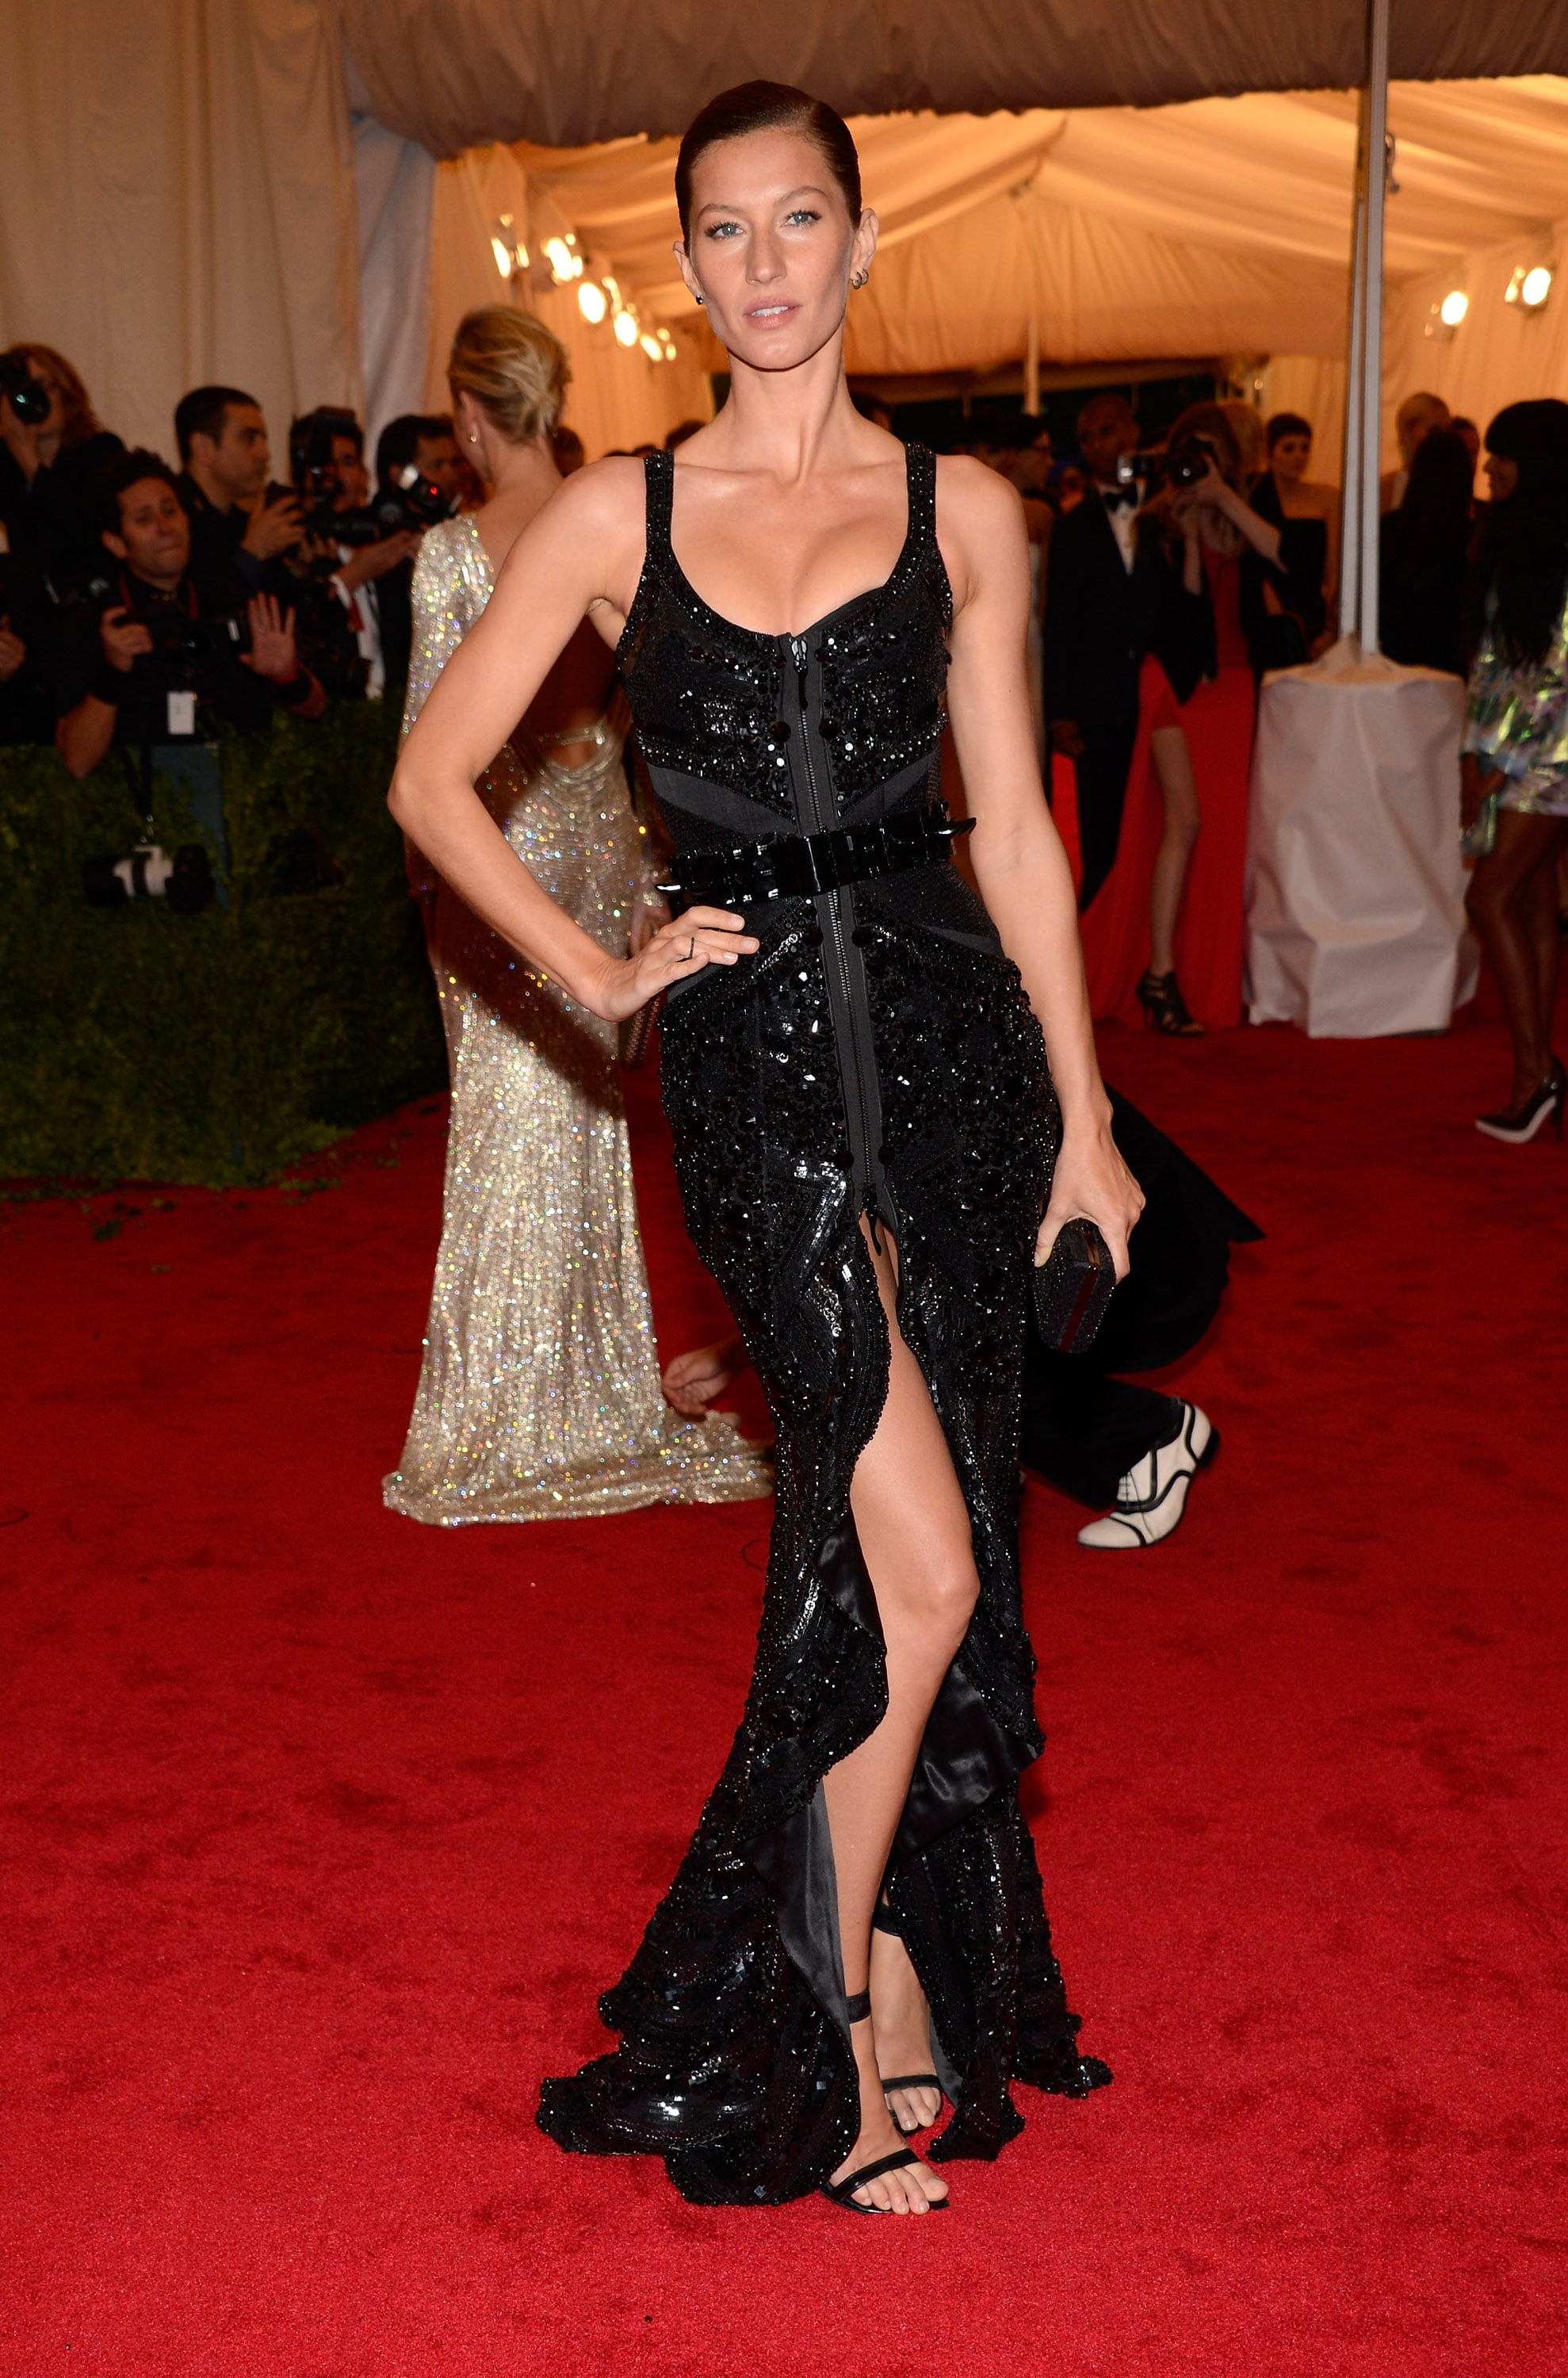 Gisele Bundchen Posed In Givenchy On The Red Carpet At The Met Gala  Gisele Bundchen -7028